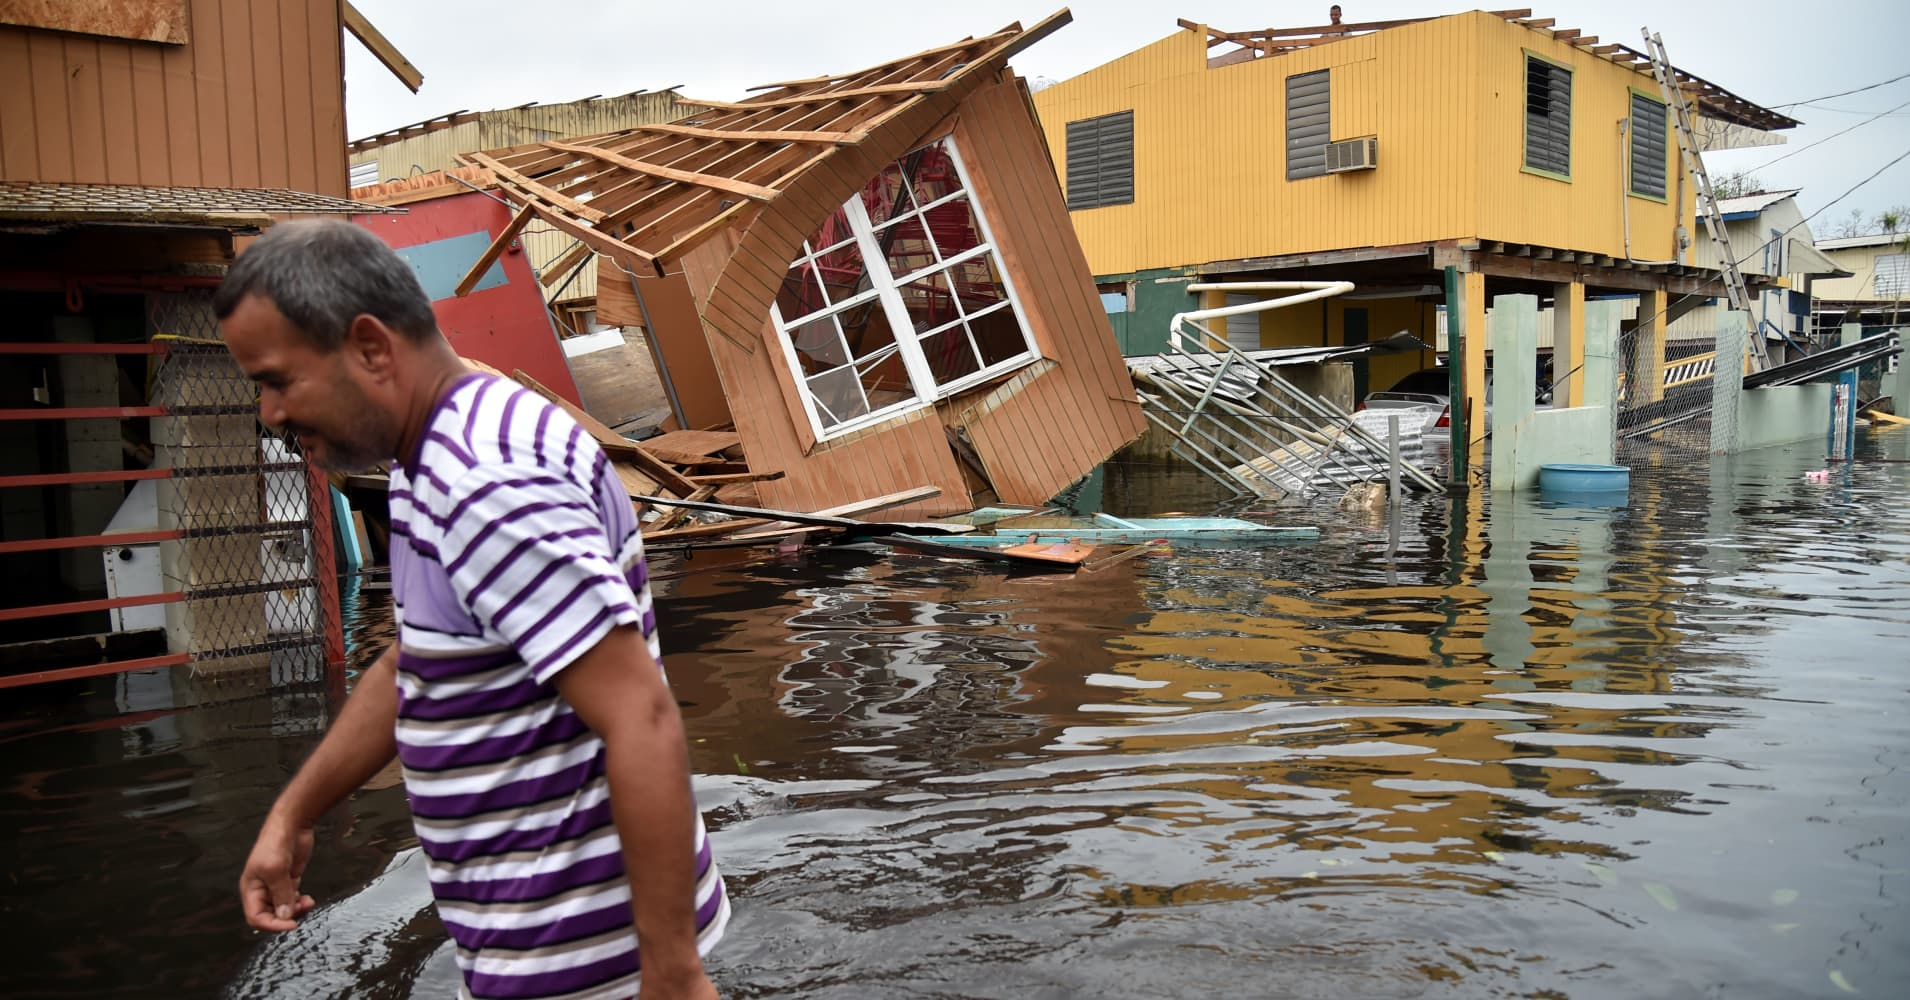 Broken bonds: The role Wall Street played in wiping out Puerto Ricans' savings